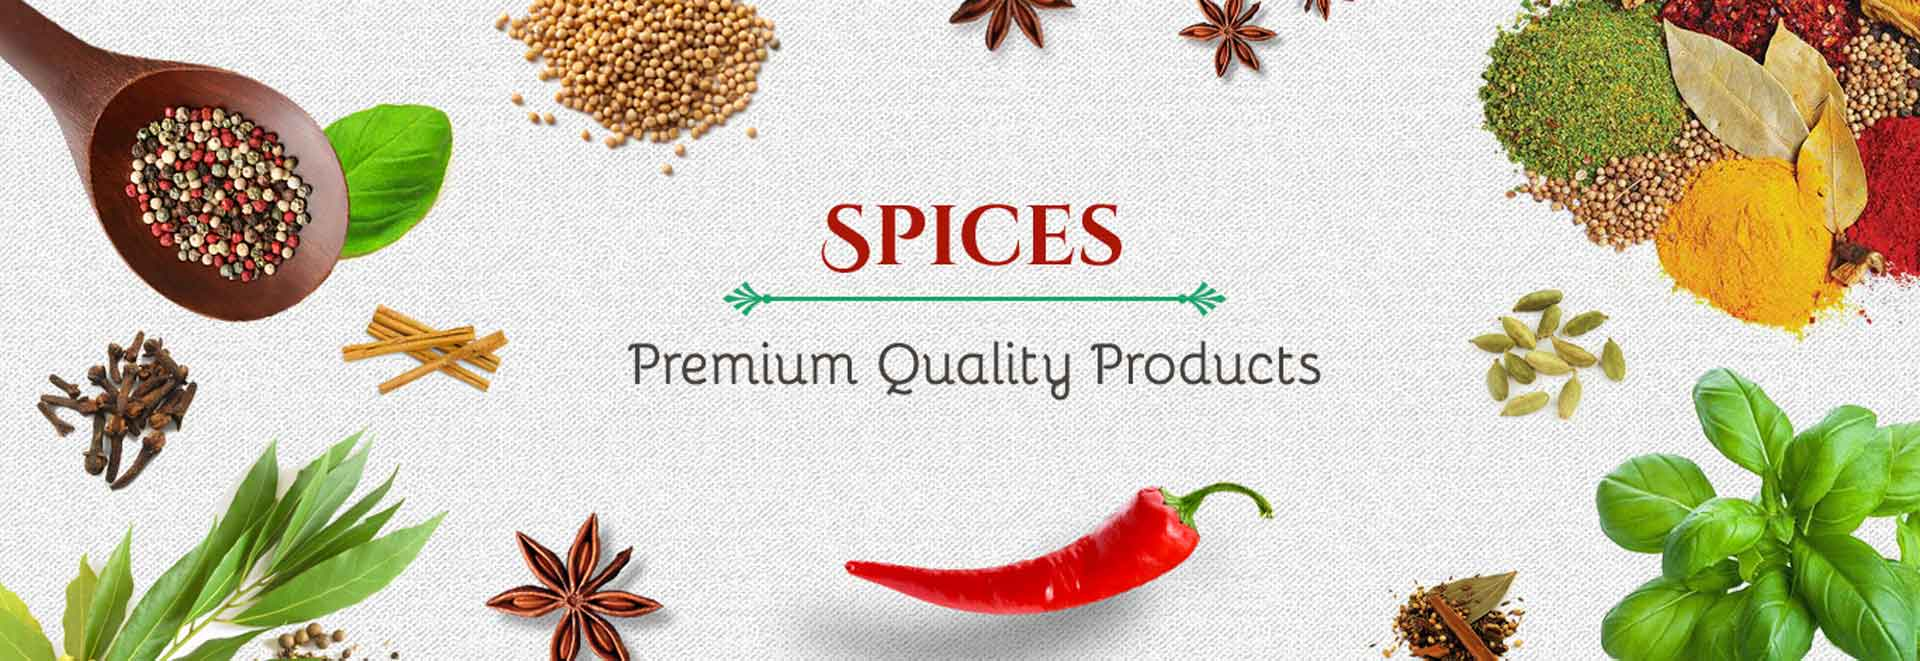 spices-banner-(1)